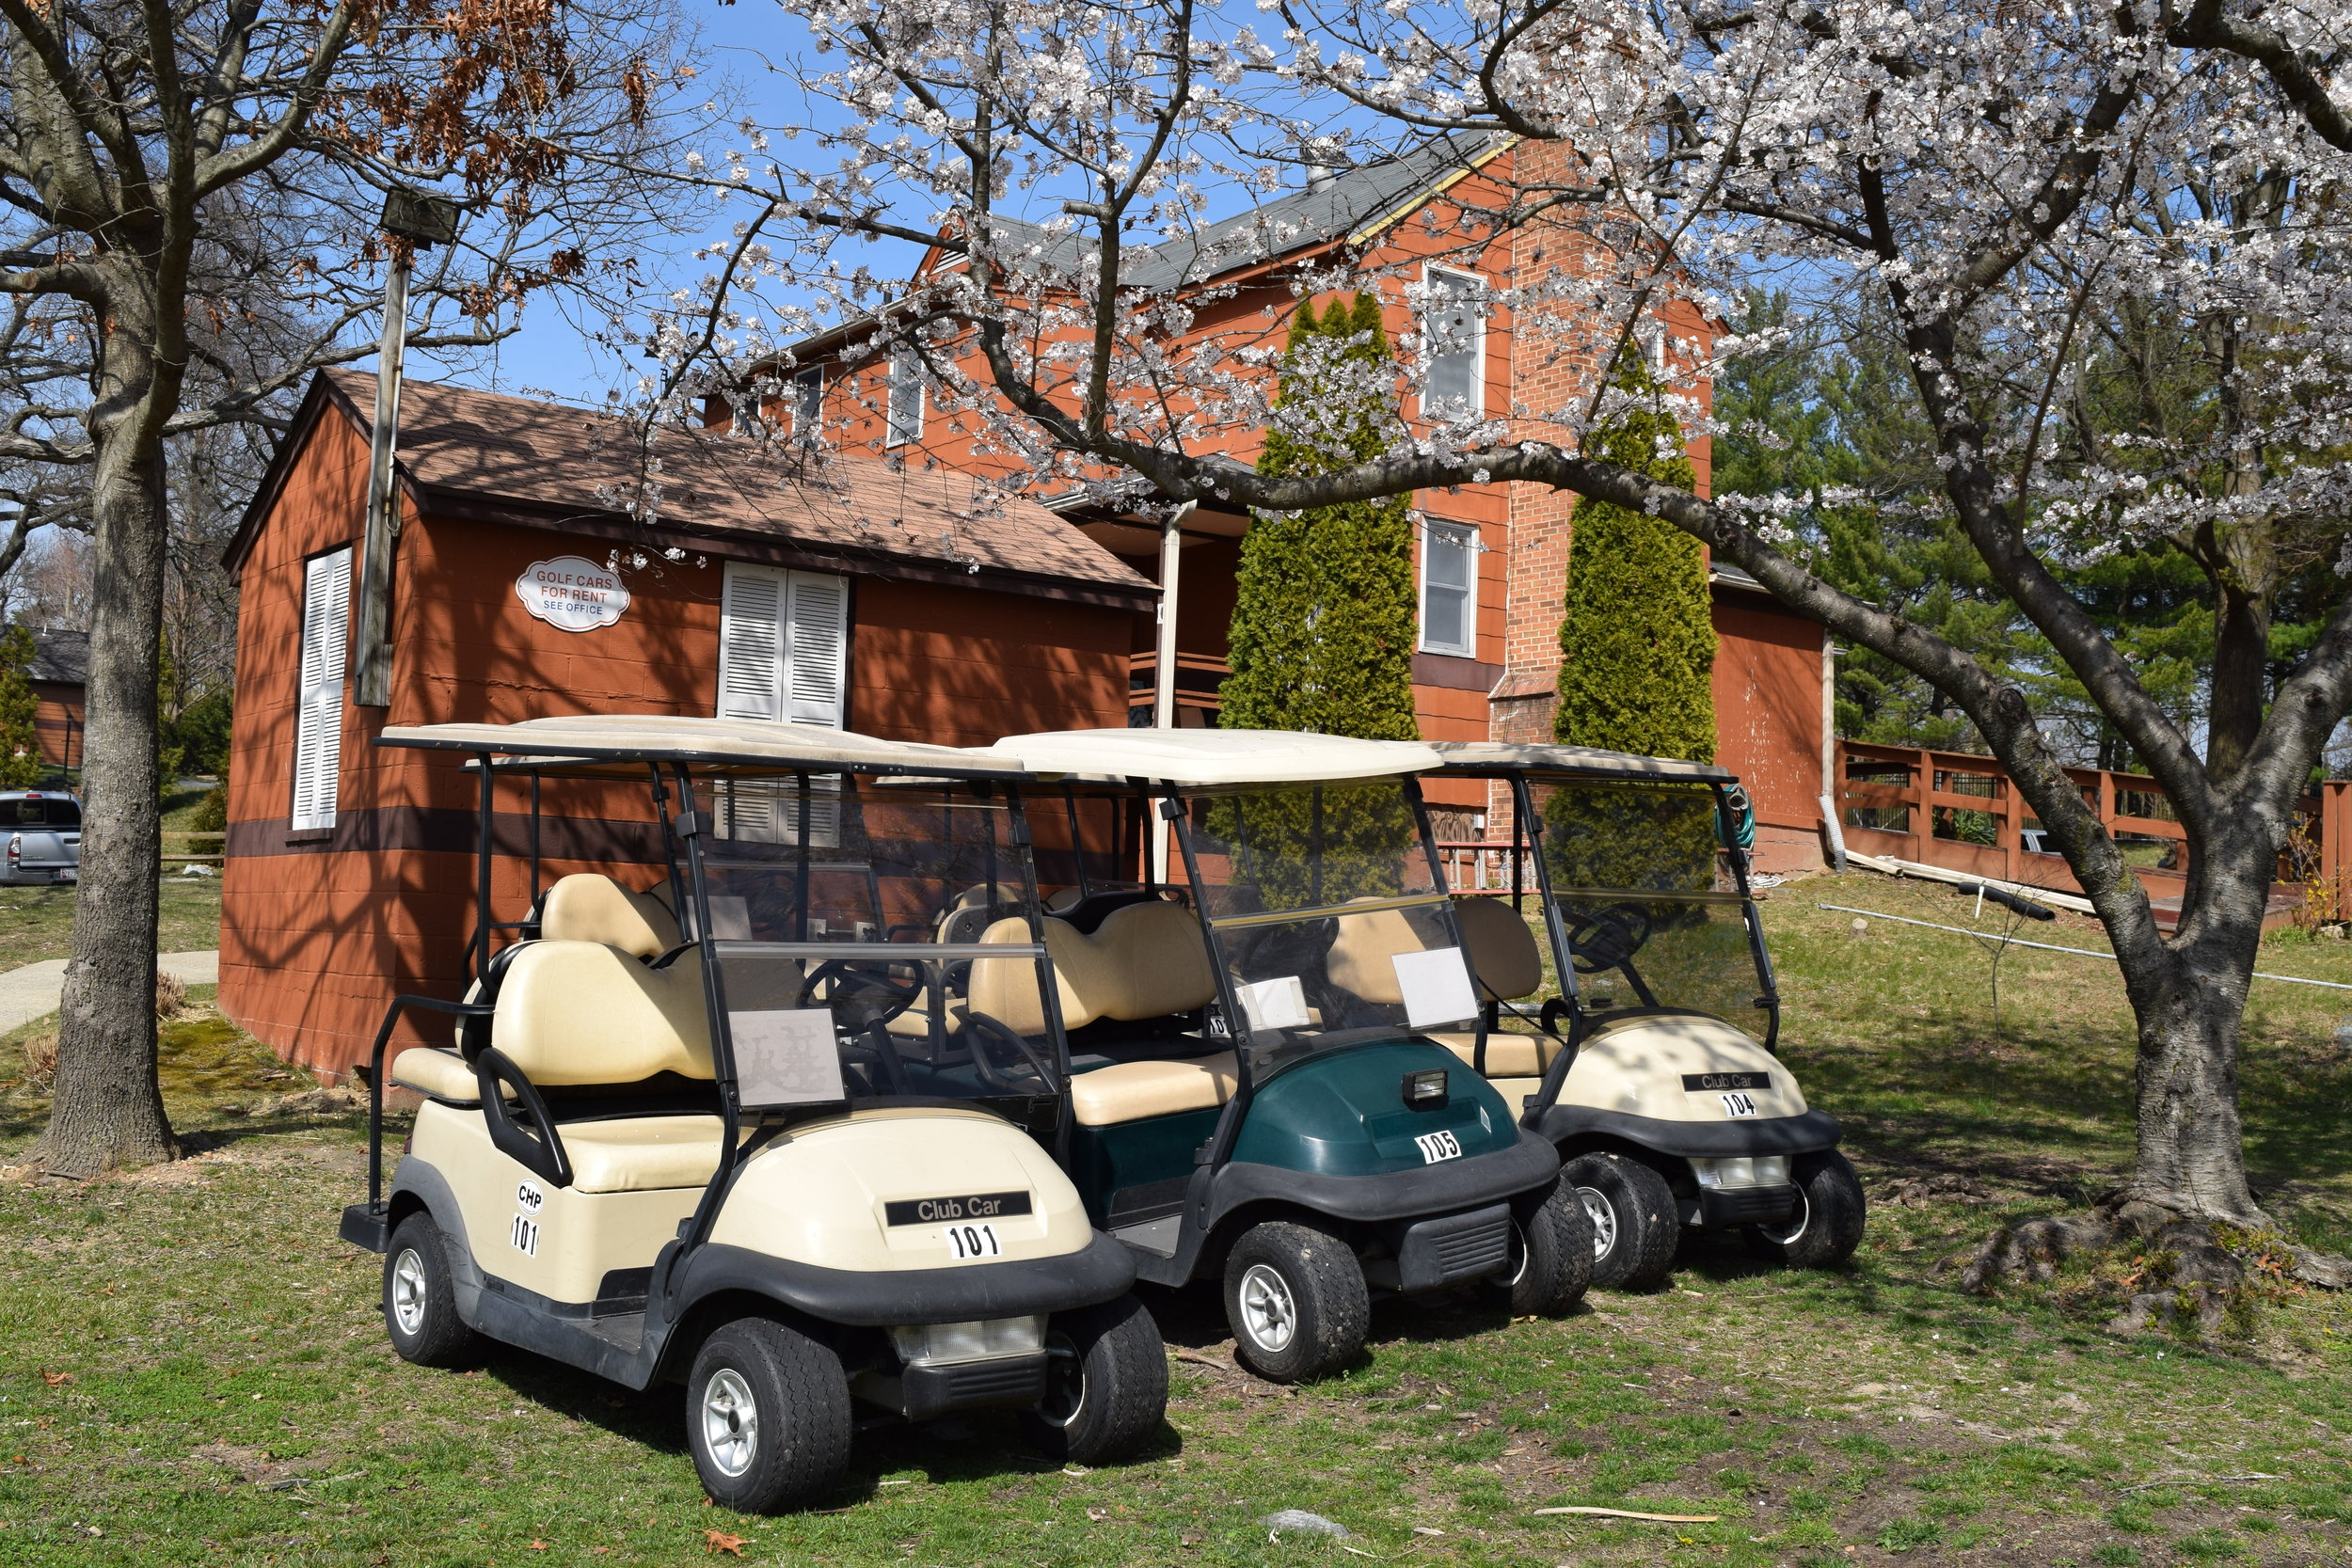 Golf Carts Parked Beneath Plum Blossoms at Cherry Hill Park